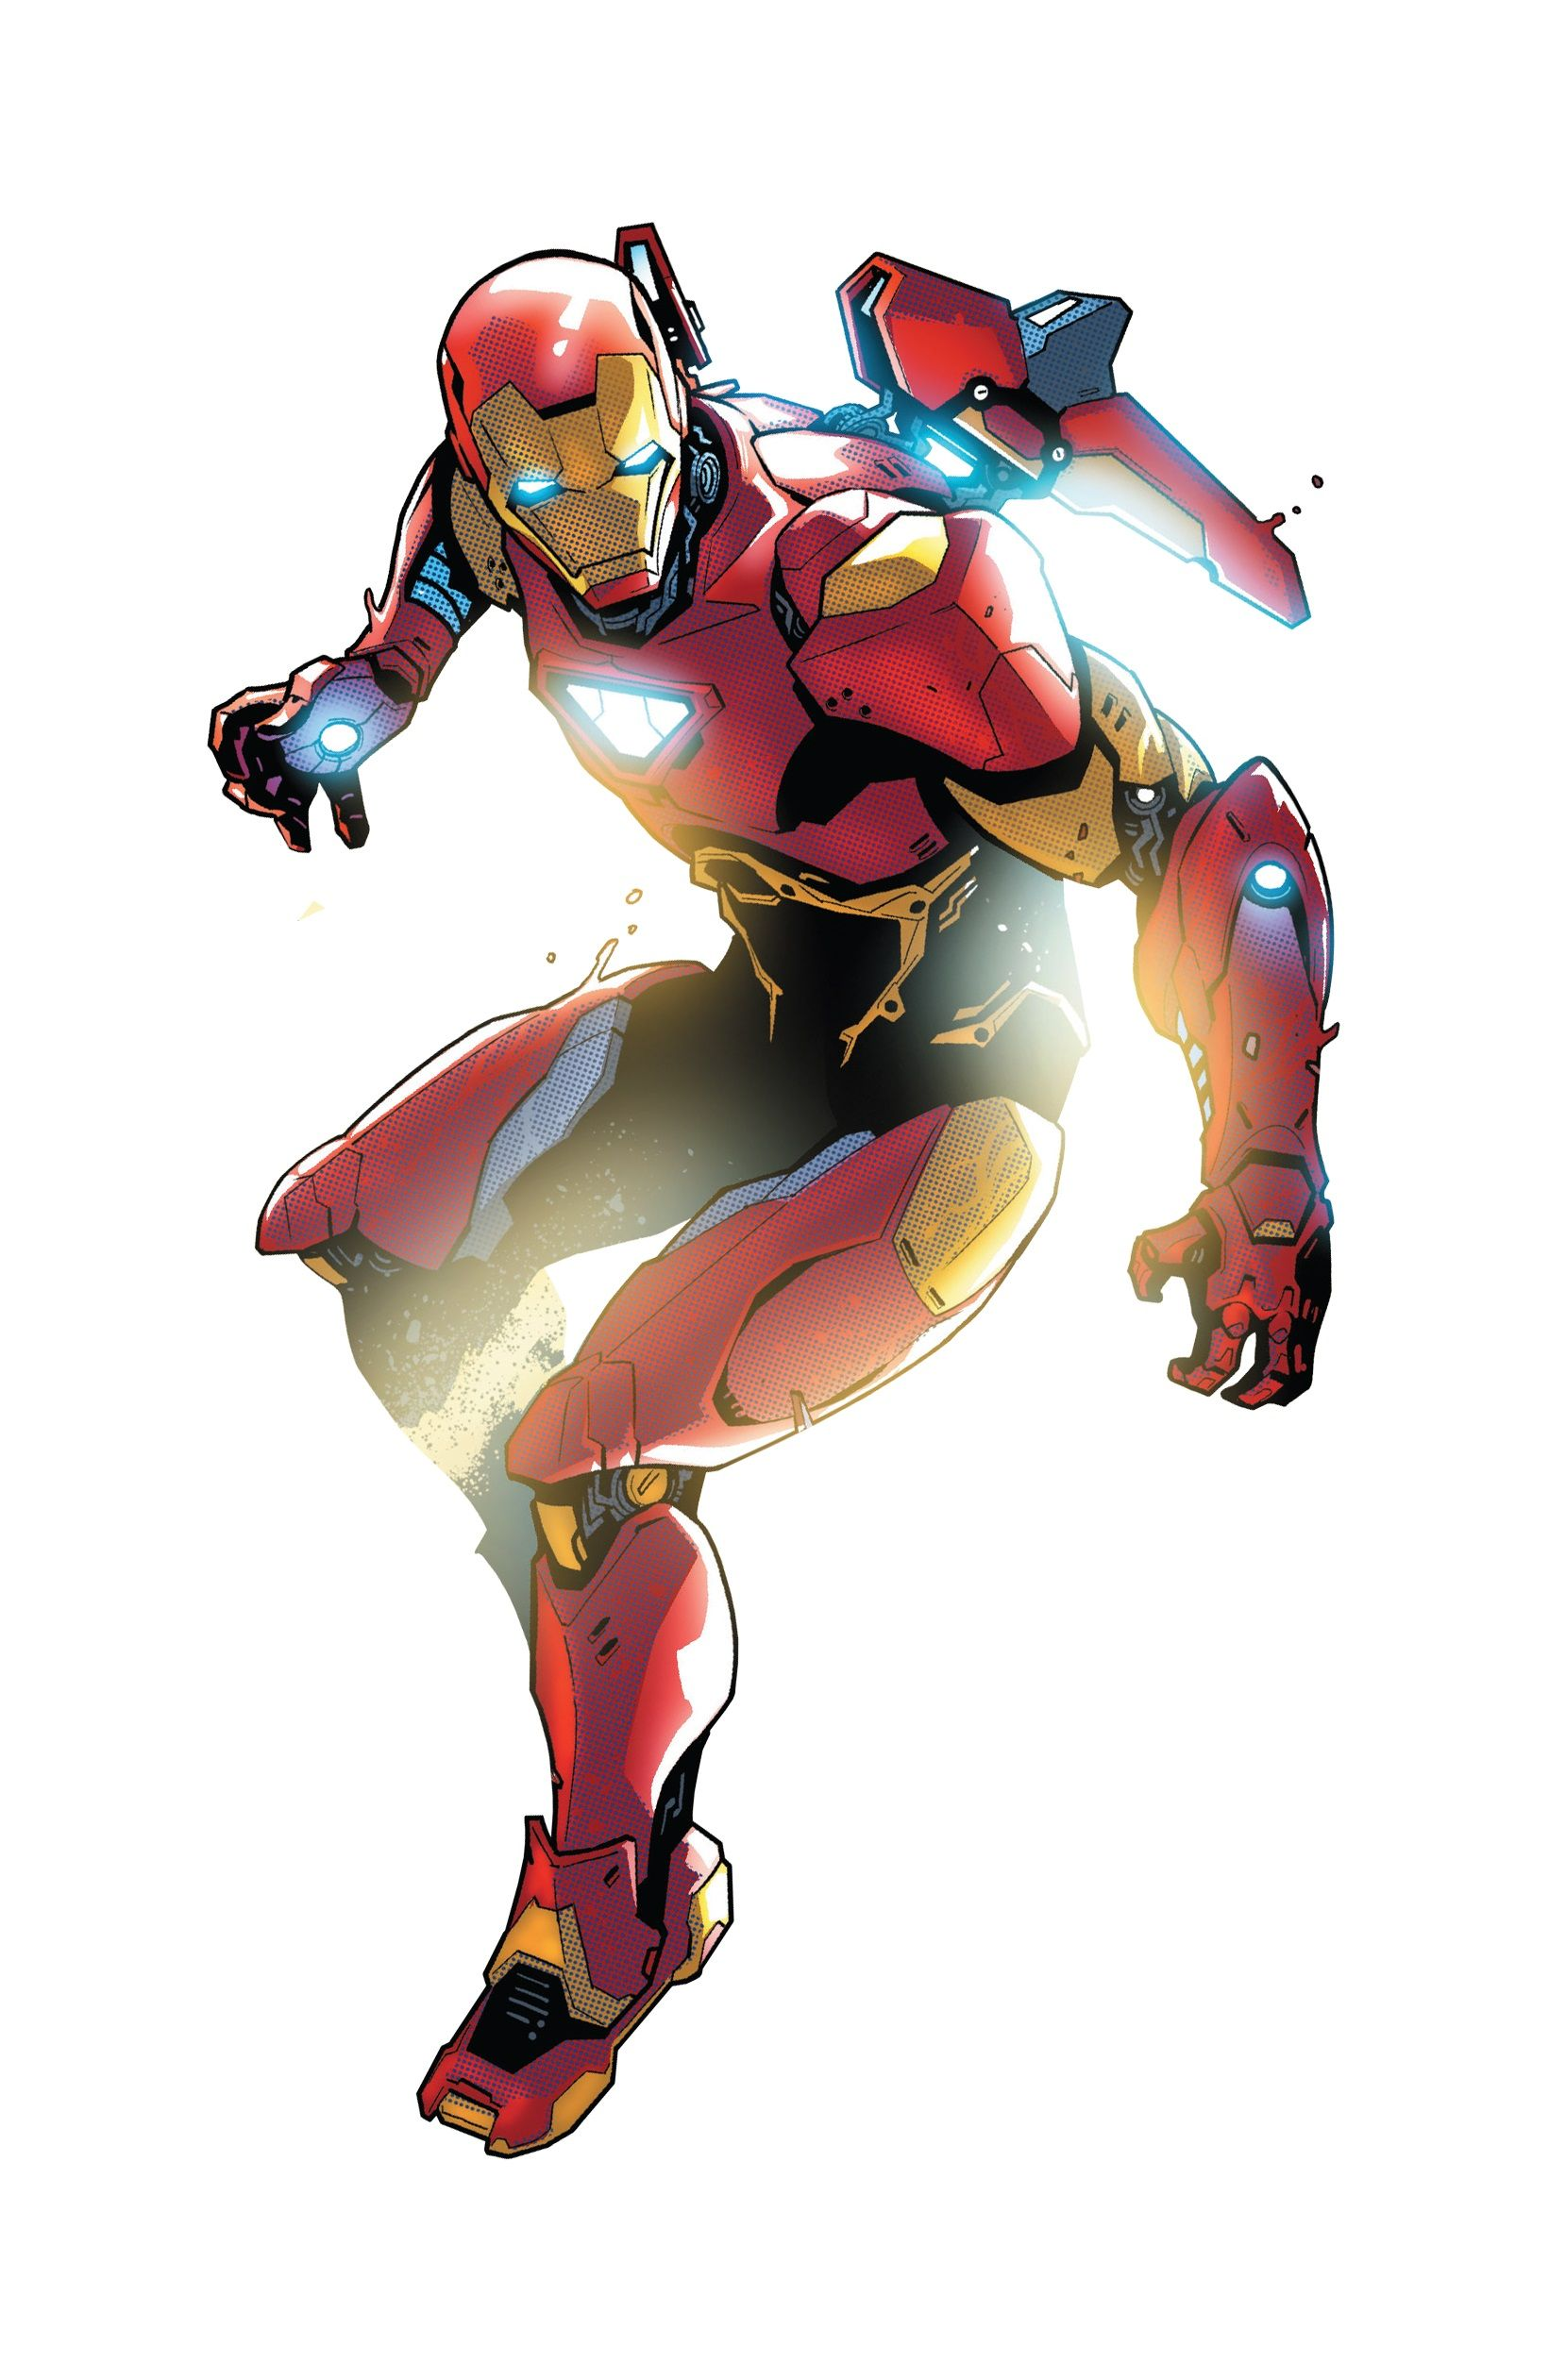 Iron Man Armor Model 55 Iron Man Armor Iron Man Comic Iron Man Art